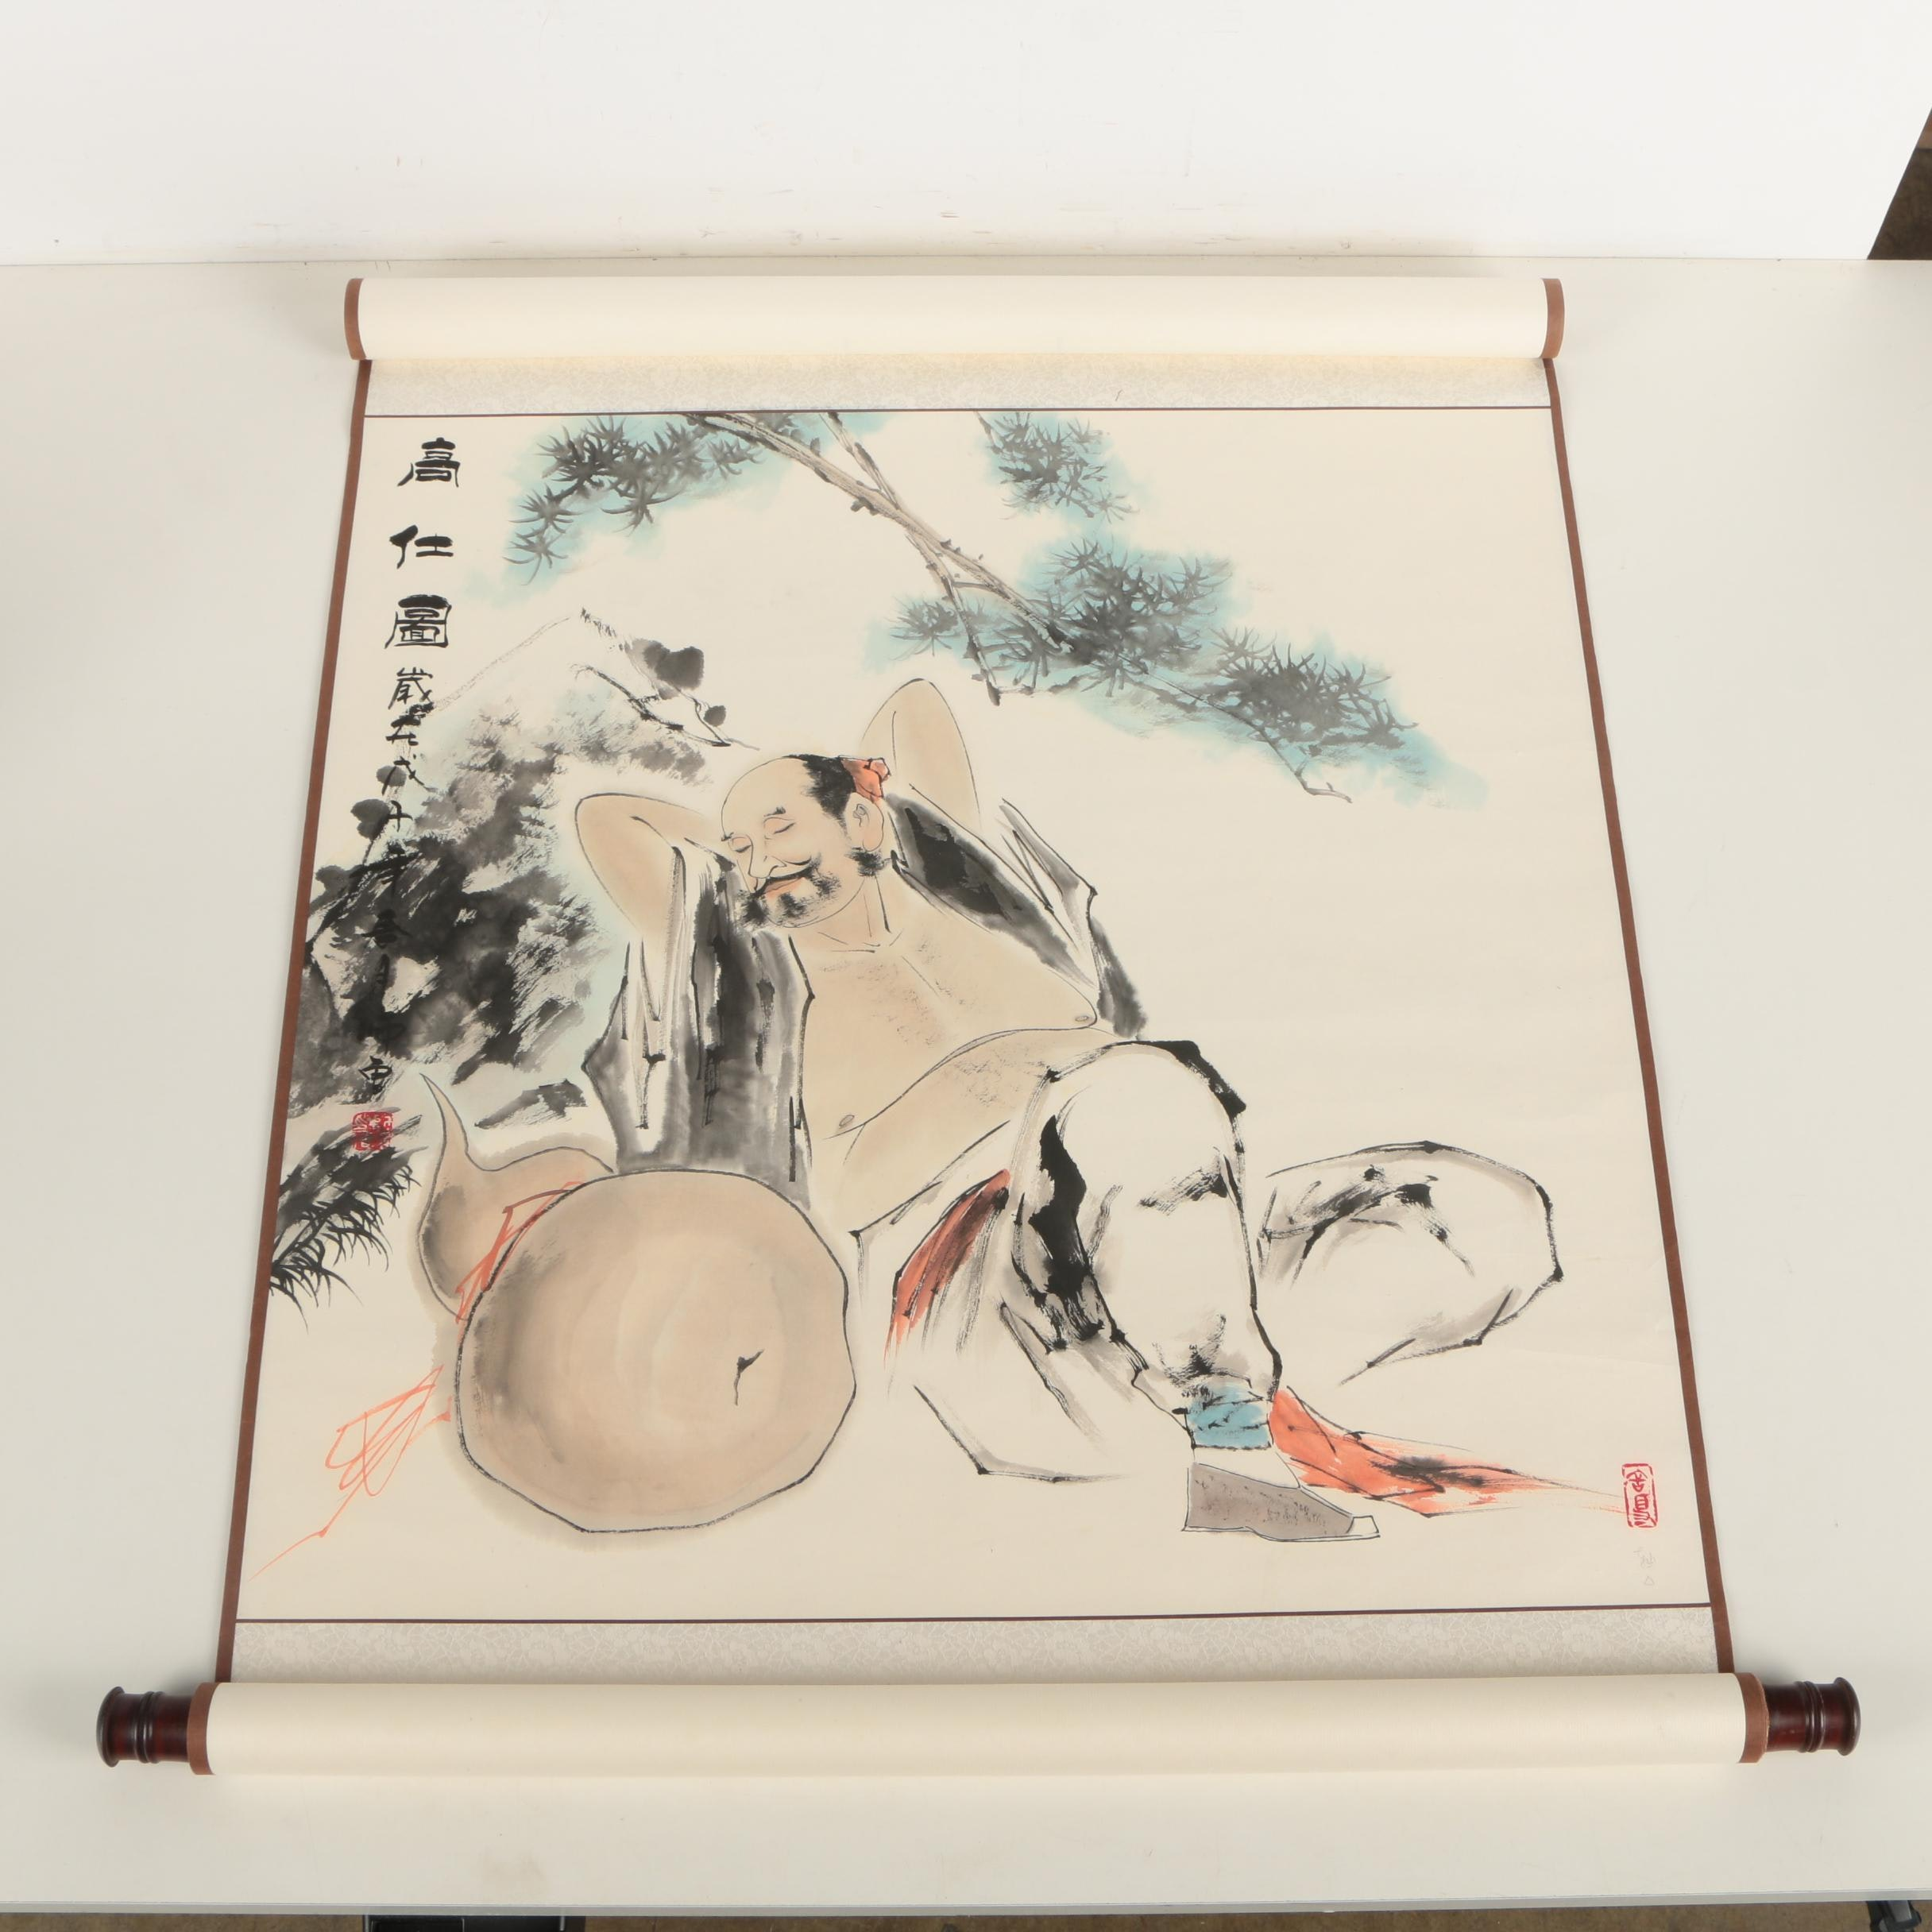 East Asian Style Watercolor and Ink Scroll Painting of Man Relaxing